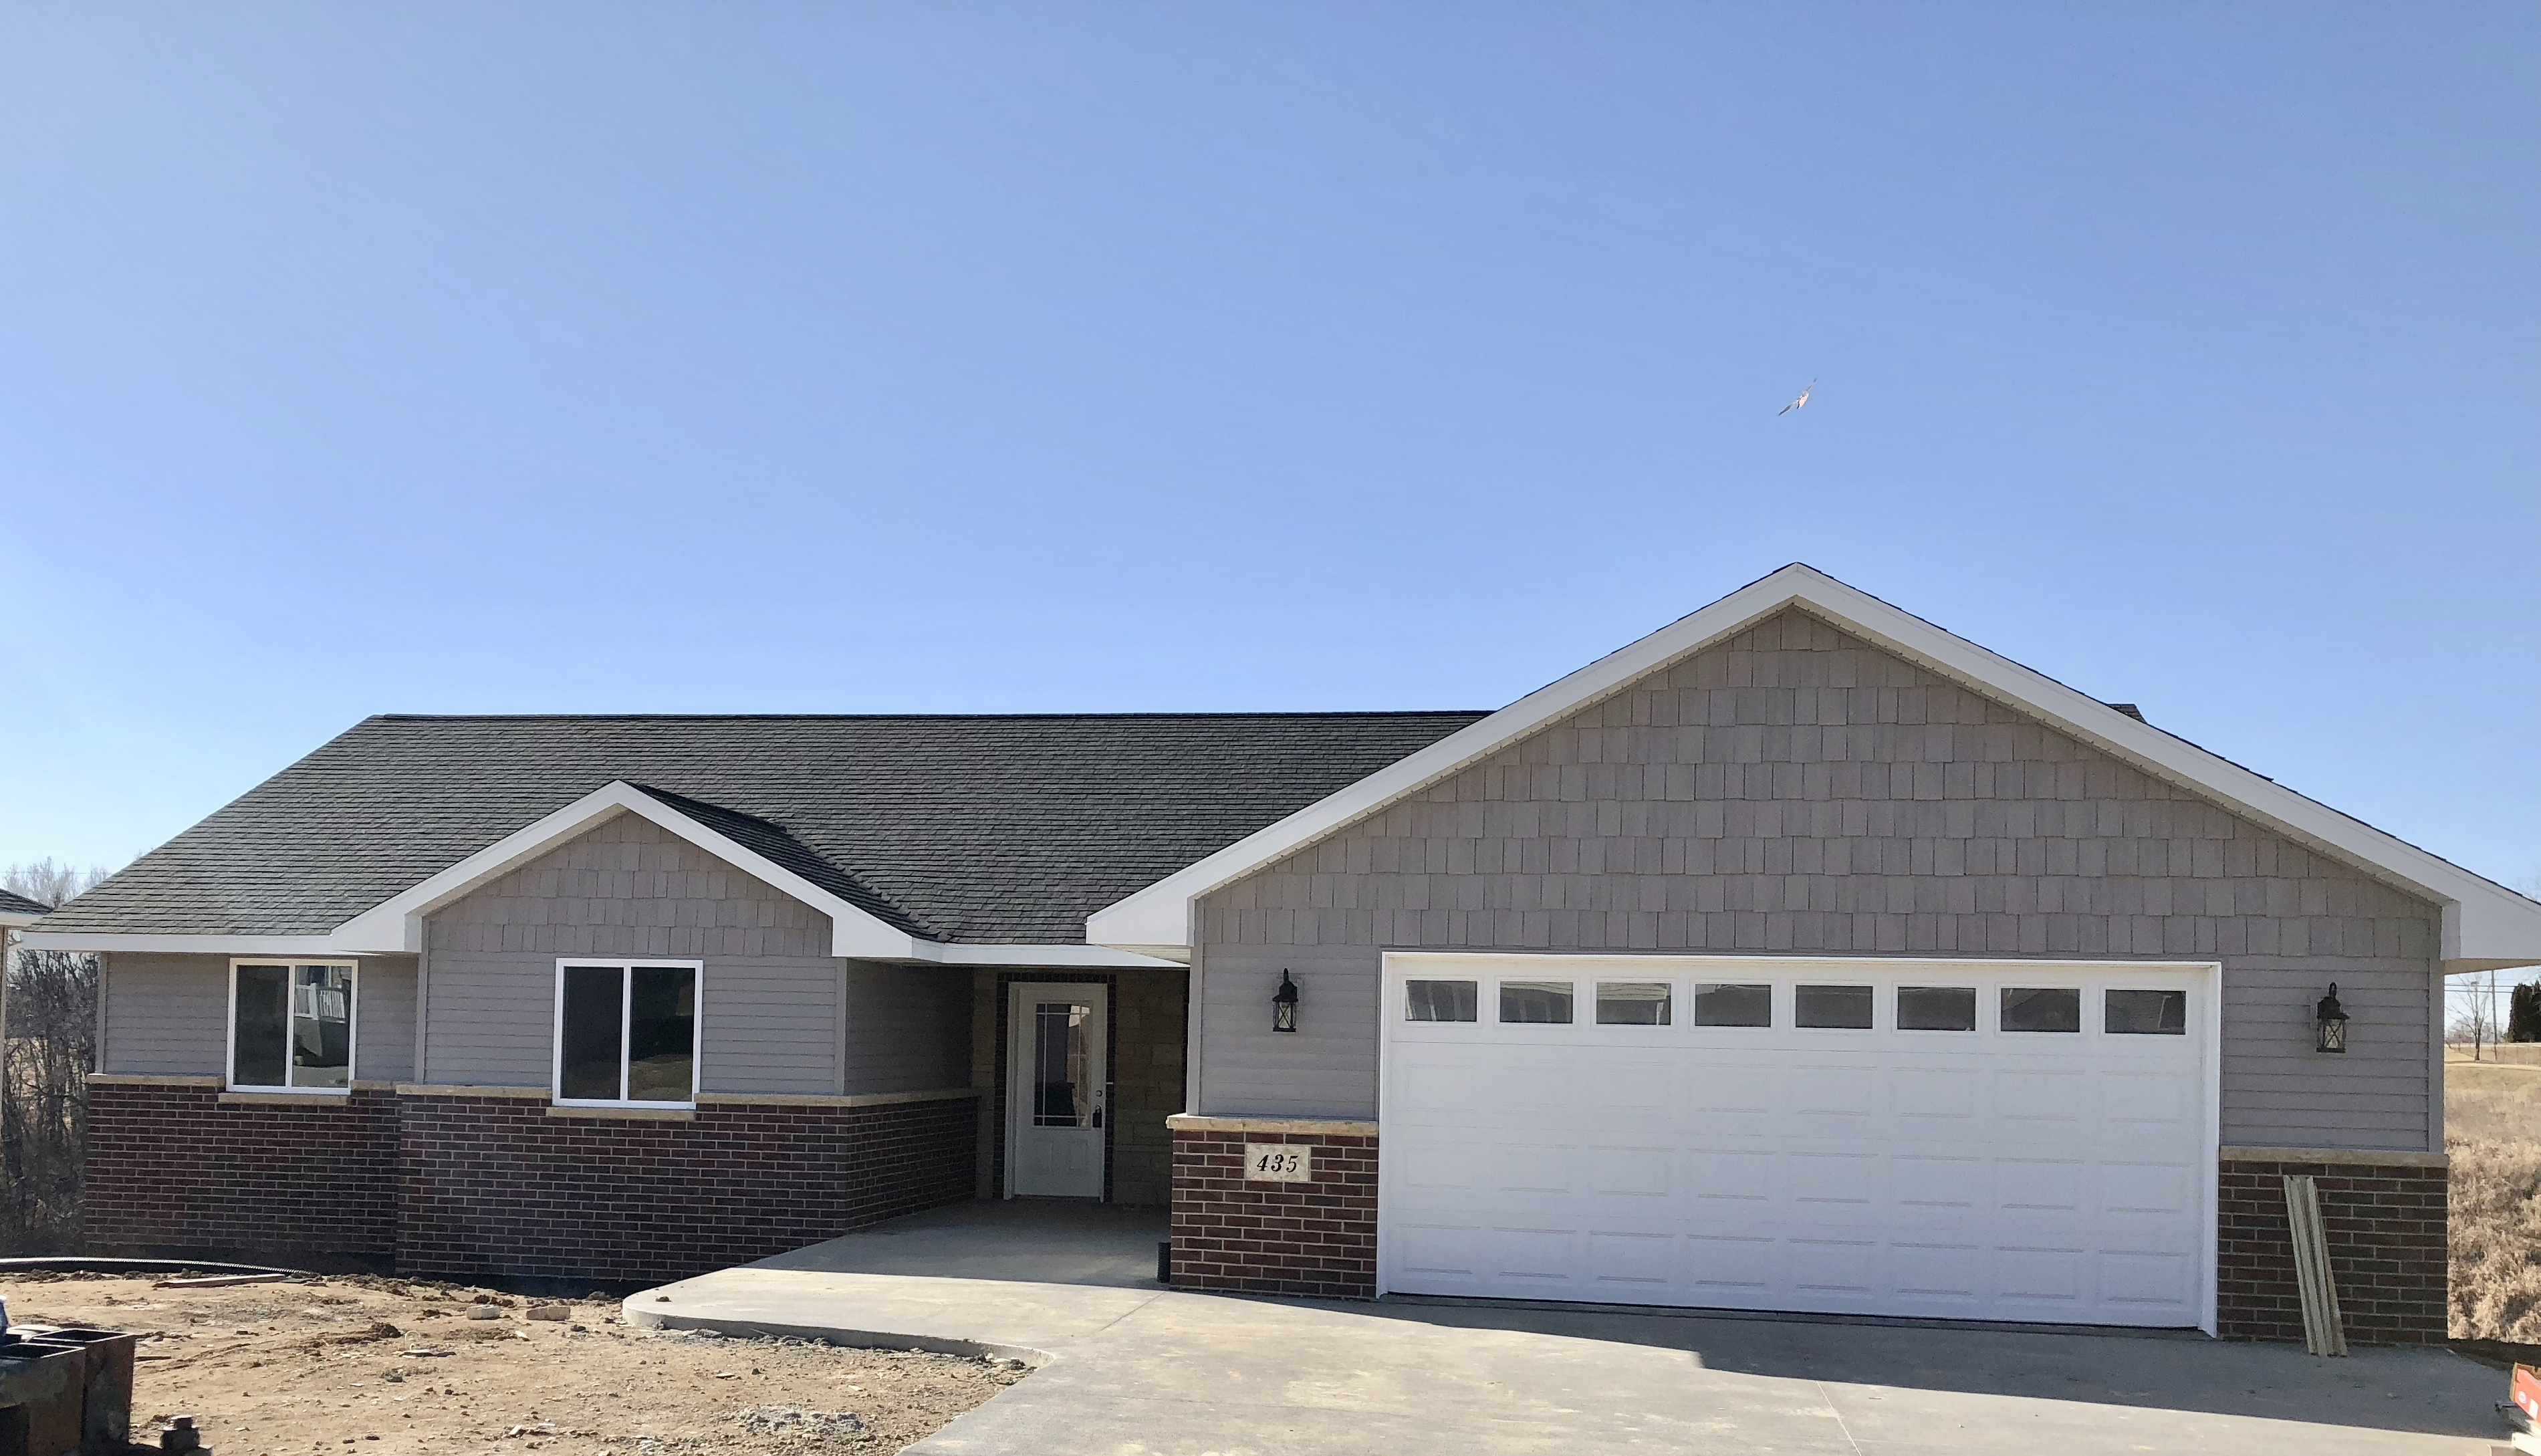 OPEN HOUSE| SUNDAY, February 18th ~ 11:00-12:00PM  || 435 N. Blake Ave., East Dubuque, IL